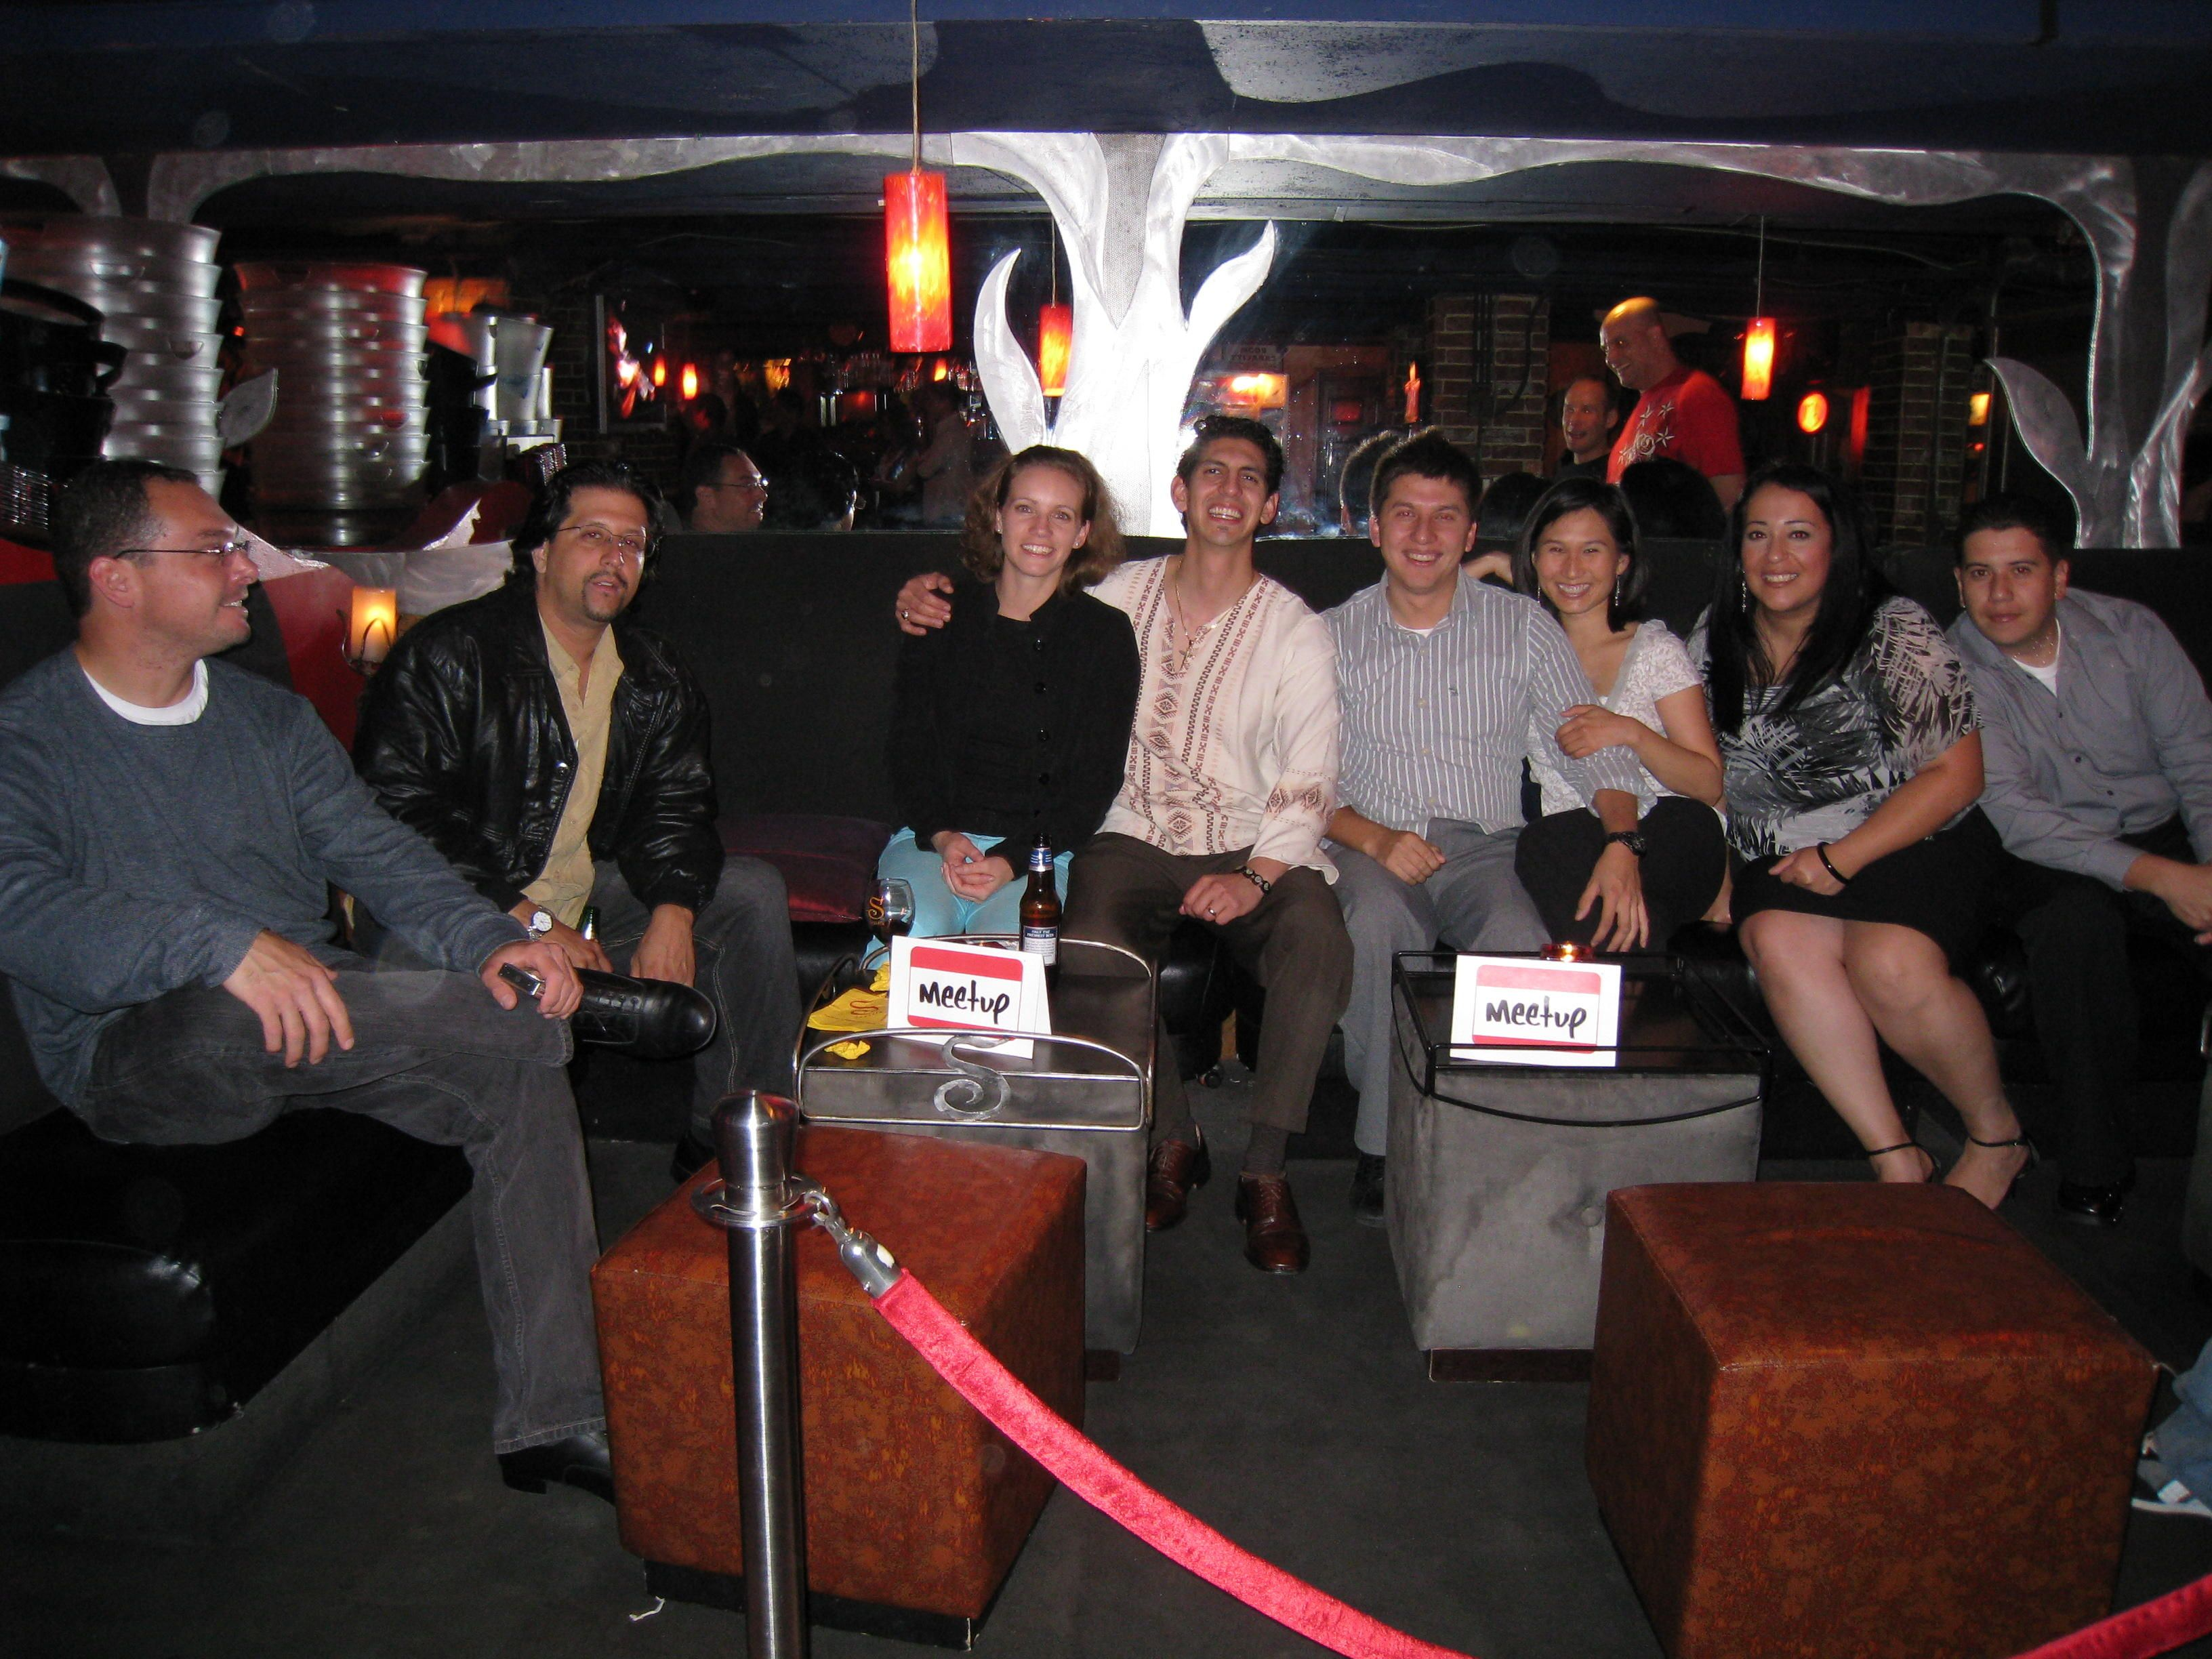 Last Month's Meetup.com Night VIP area